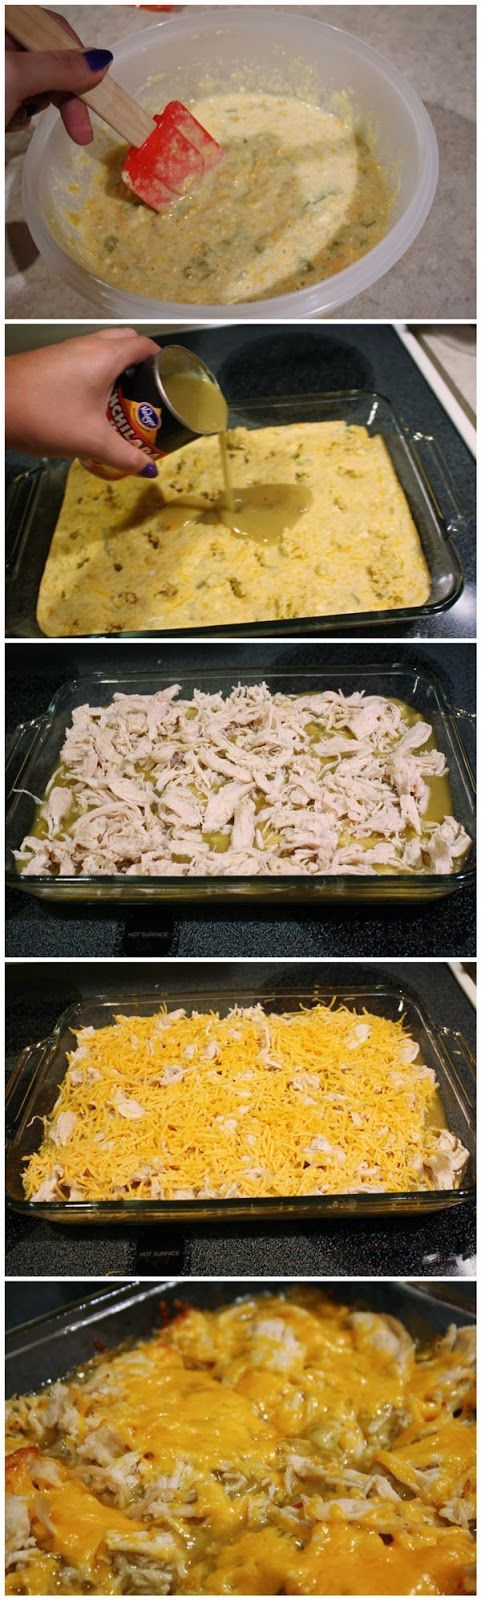 Chicken Tamale Casserole I used 1/2 my corn bread recipe. no creamed corn. In a 9 inch square pan. it was good. Mark loved it!